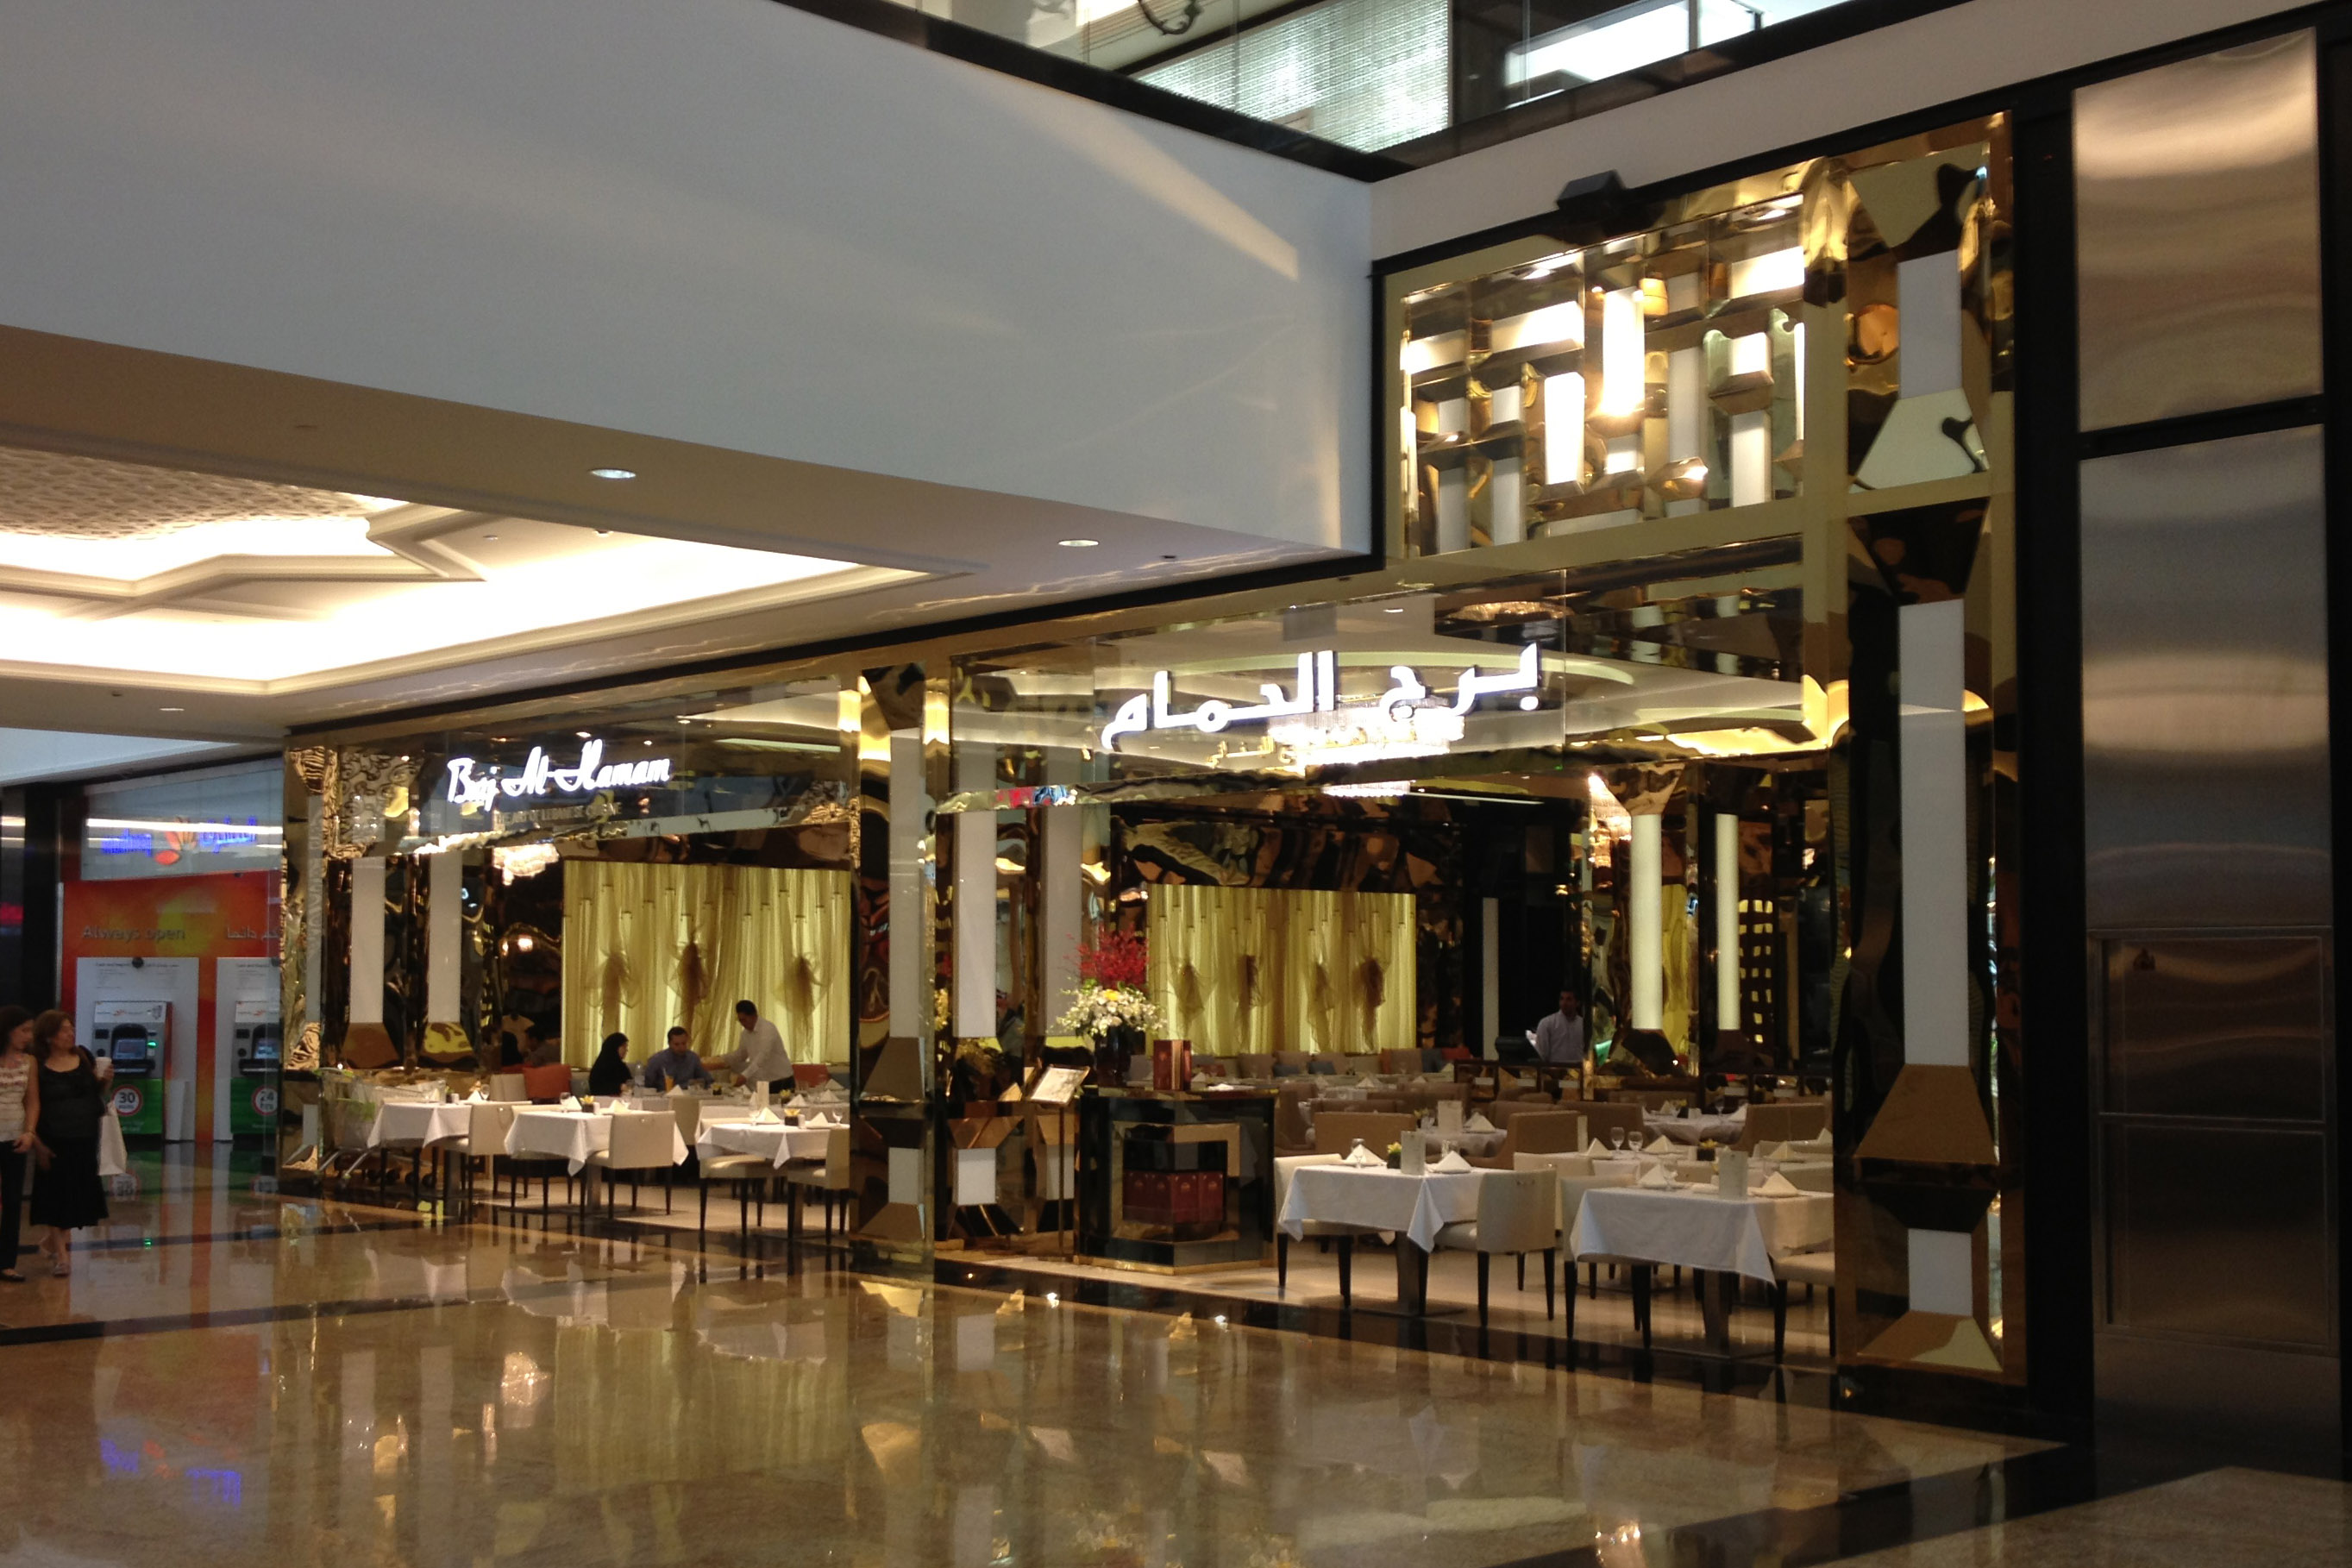 Burj Al Hamam (Mall of the Emirates)